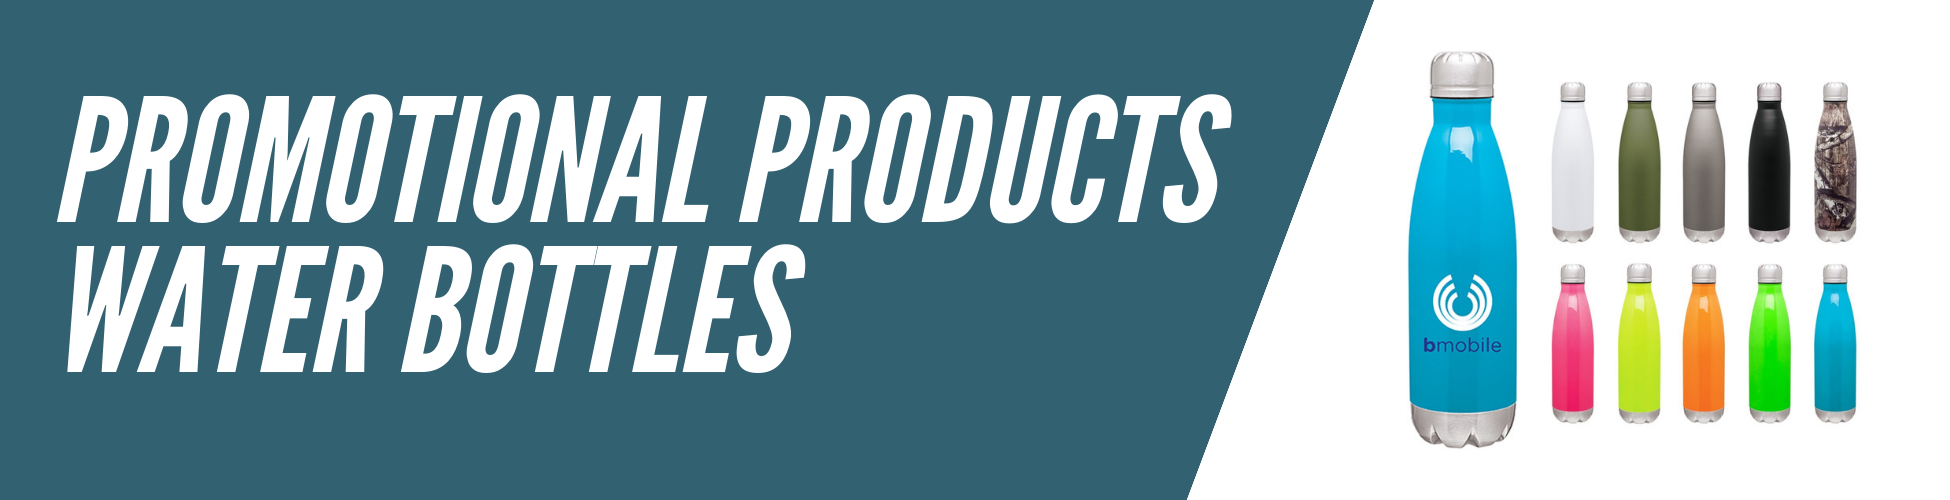 promotional-products-water-bottles-banner-v3.png